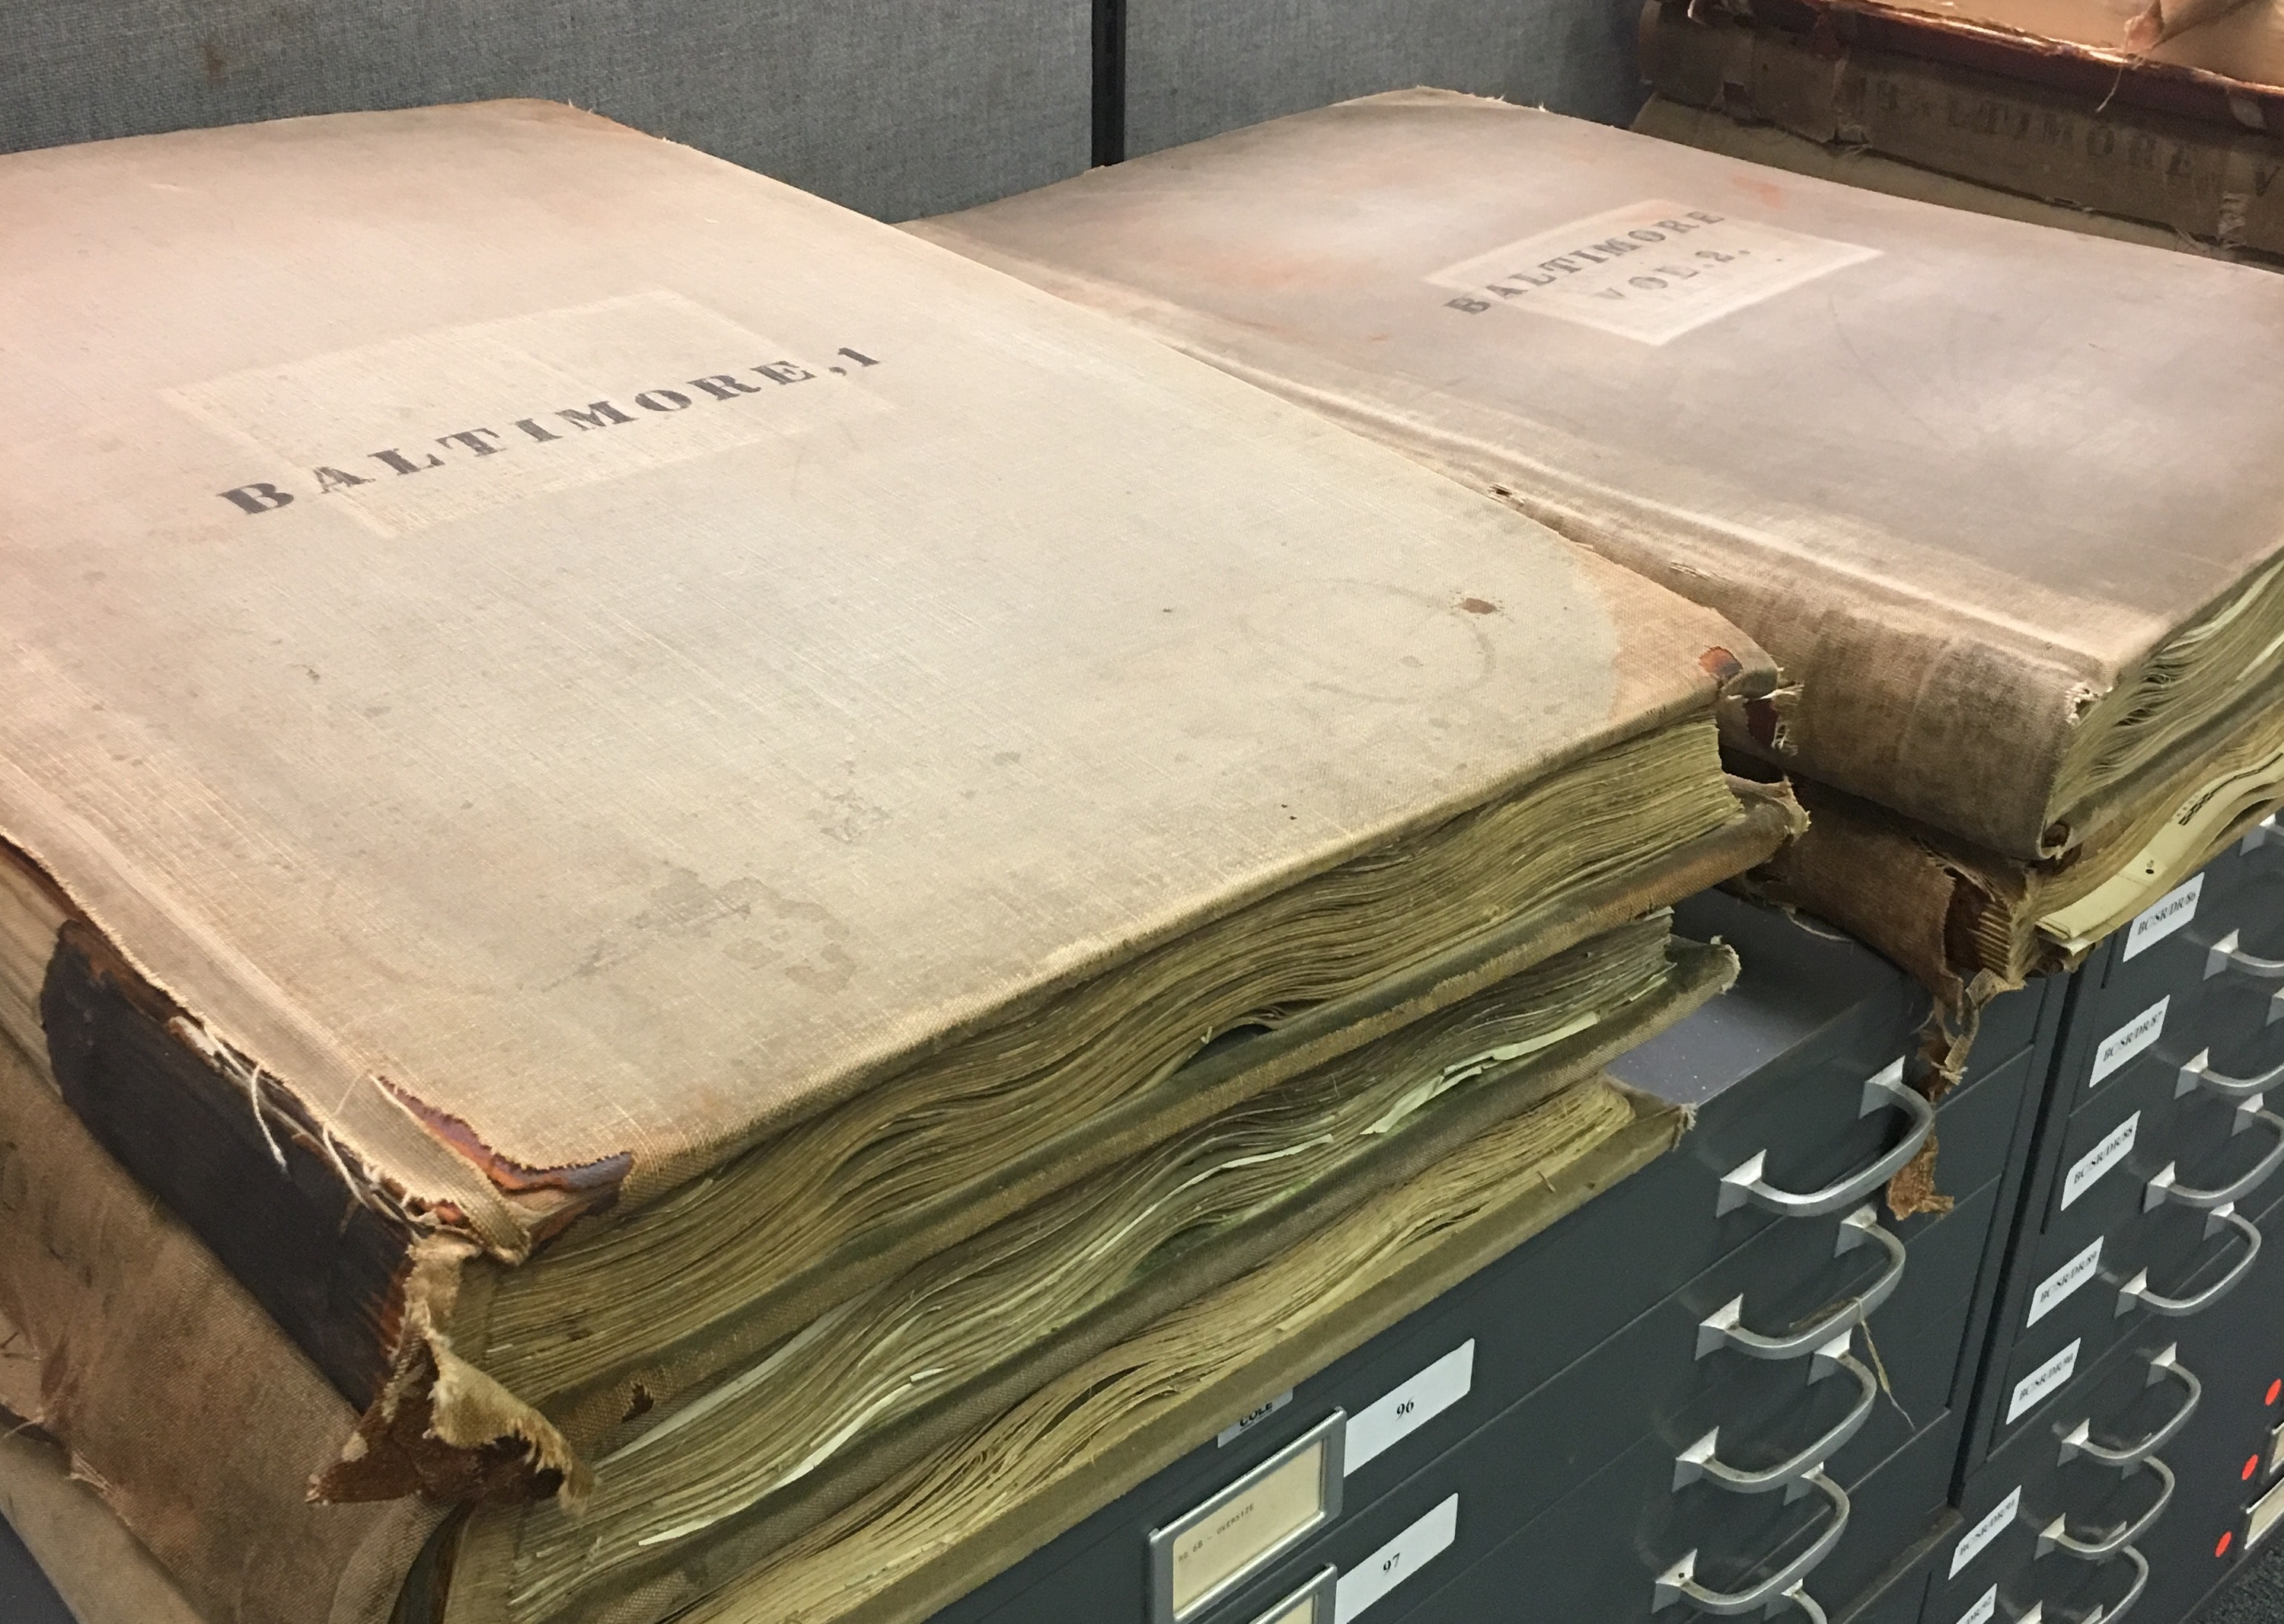 The Sanborn Map Company published detailed maps of U.S. cities and towns in the 19th and 20th centuries for fire insurance companies. Since they contain so much detailed information, they're invaluable resources that show how American cities have changed over many decades.Photo by the author, Baltimore City Archives, Author provided